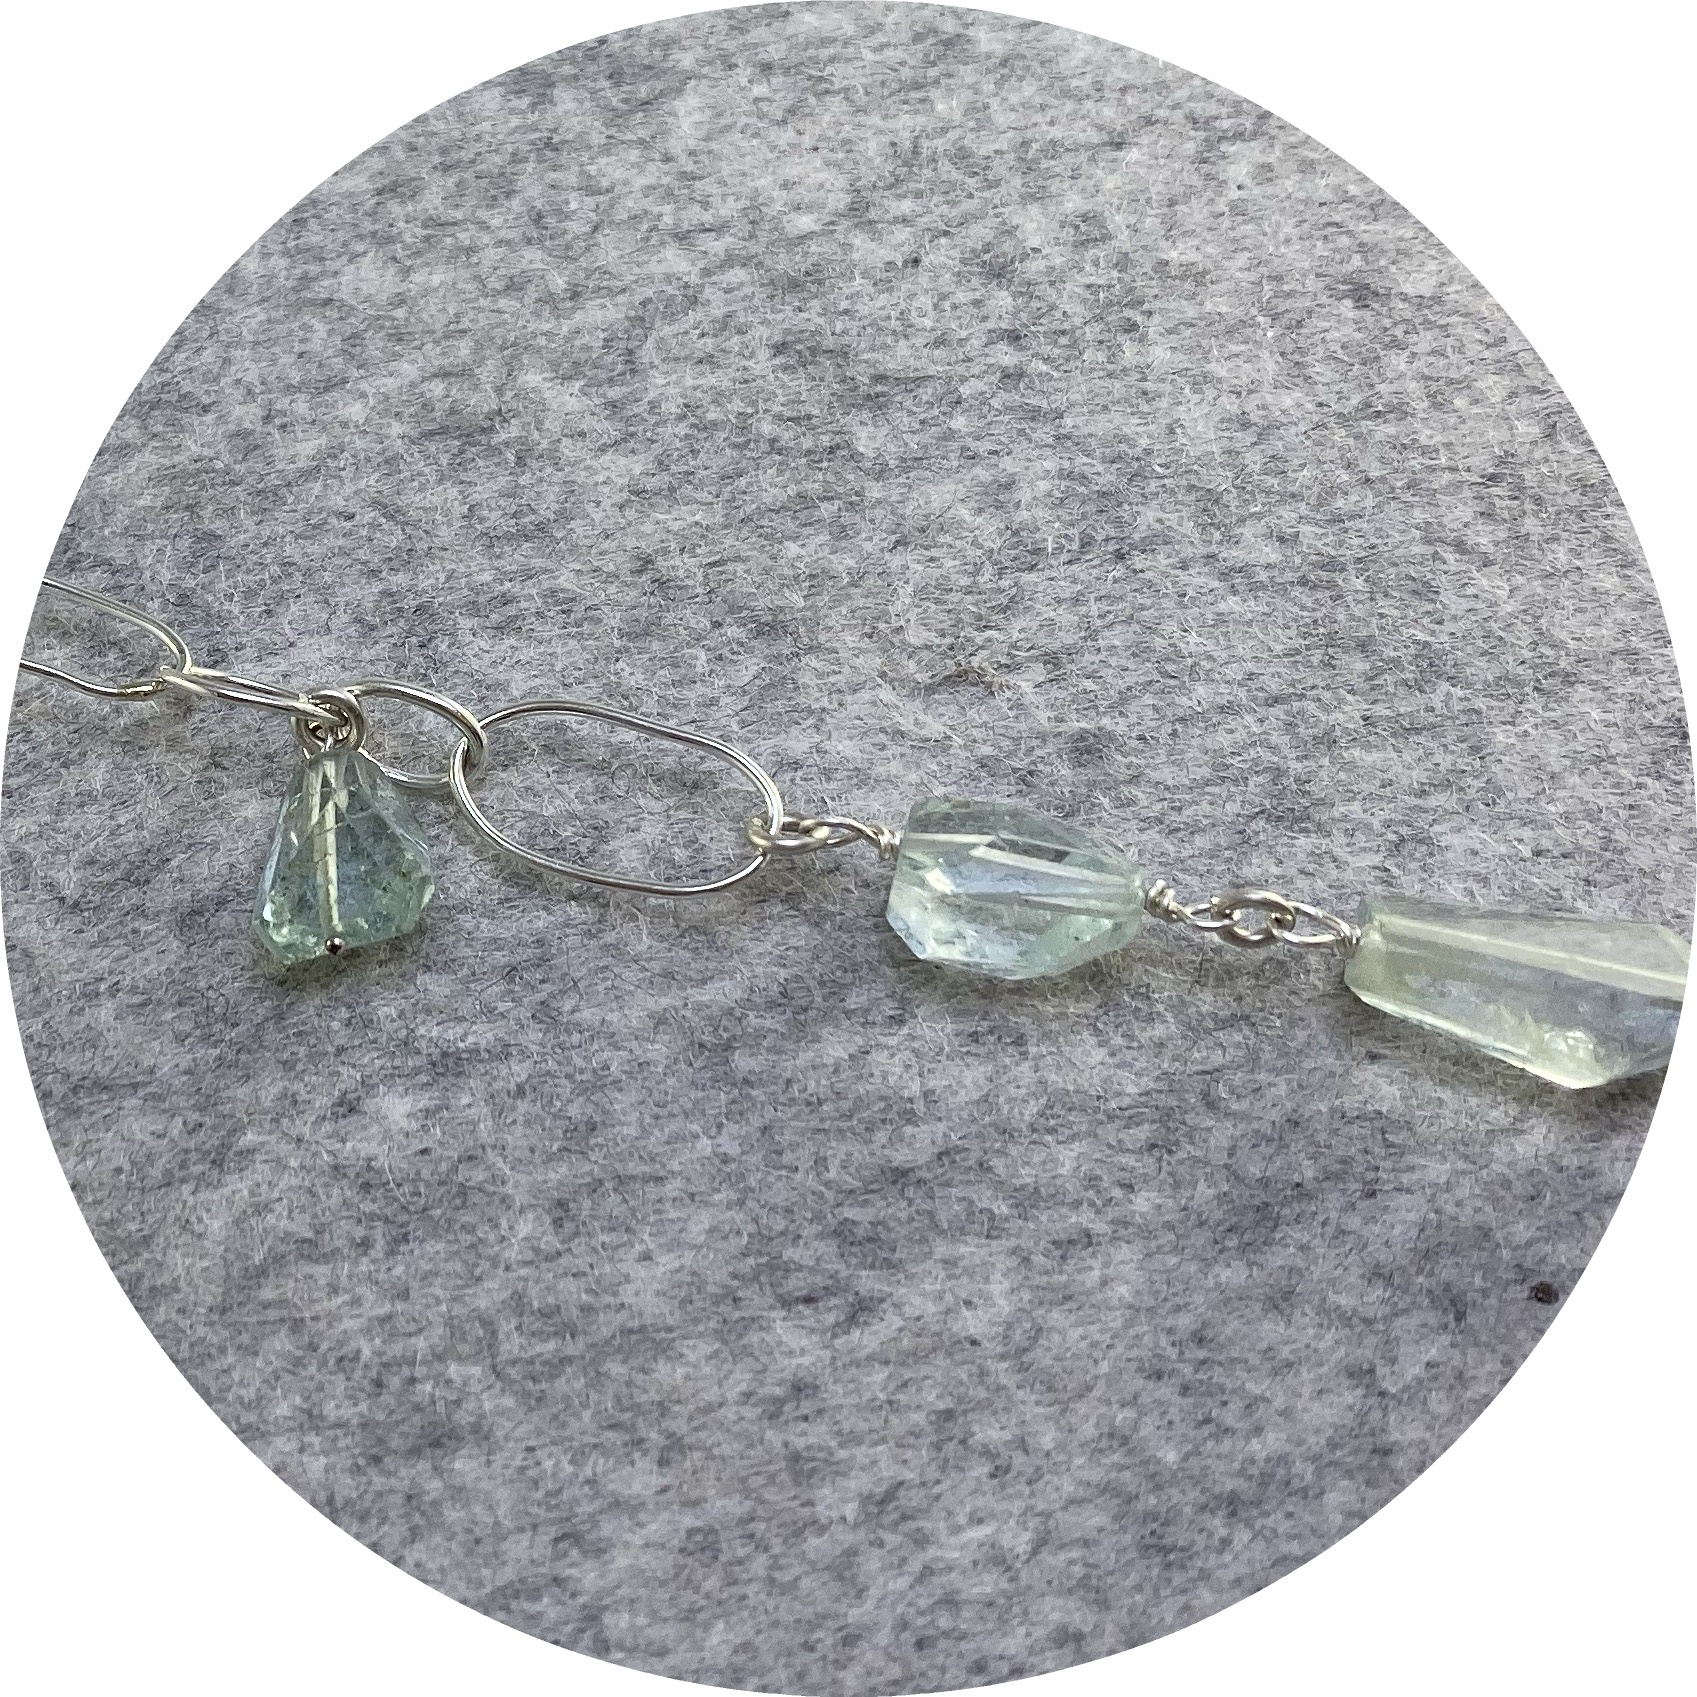 Katie Shanahan - Freeform Faceted Aquamarine Bracelet  with Handmade Sterling Silver Beads and Chain